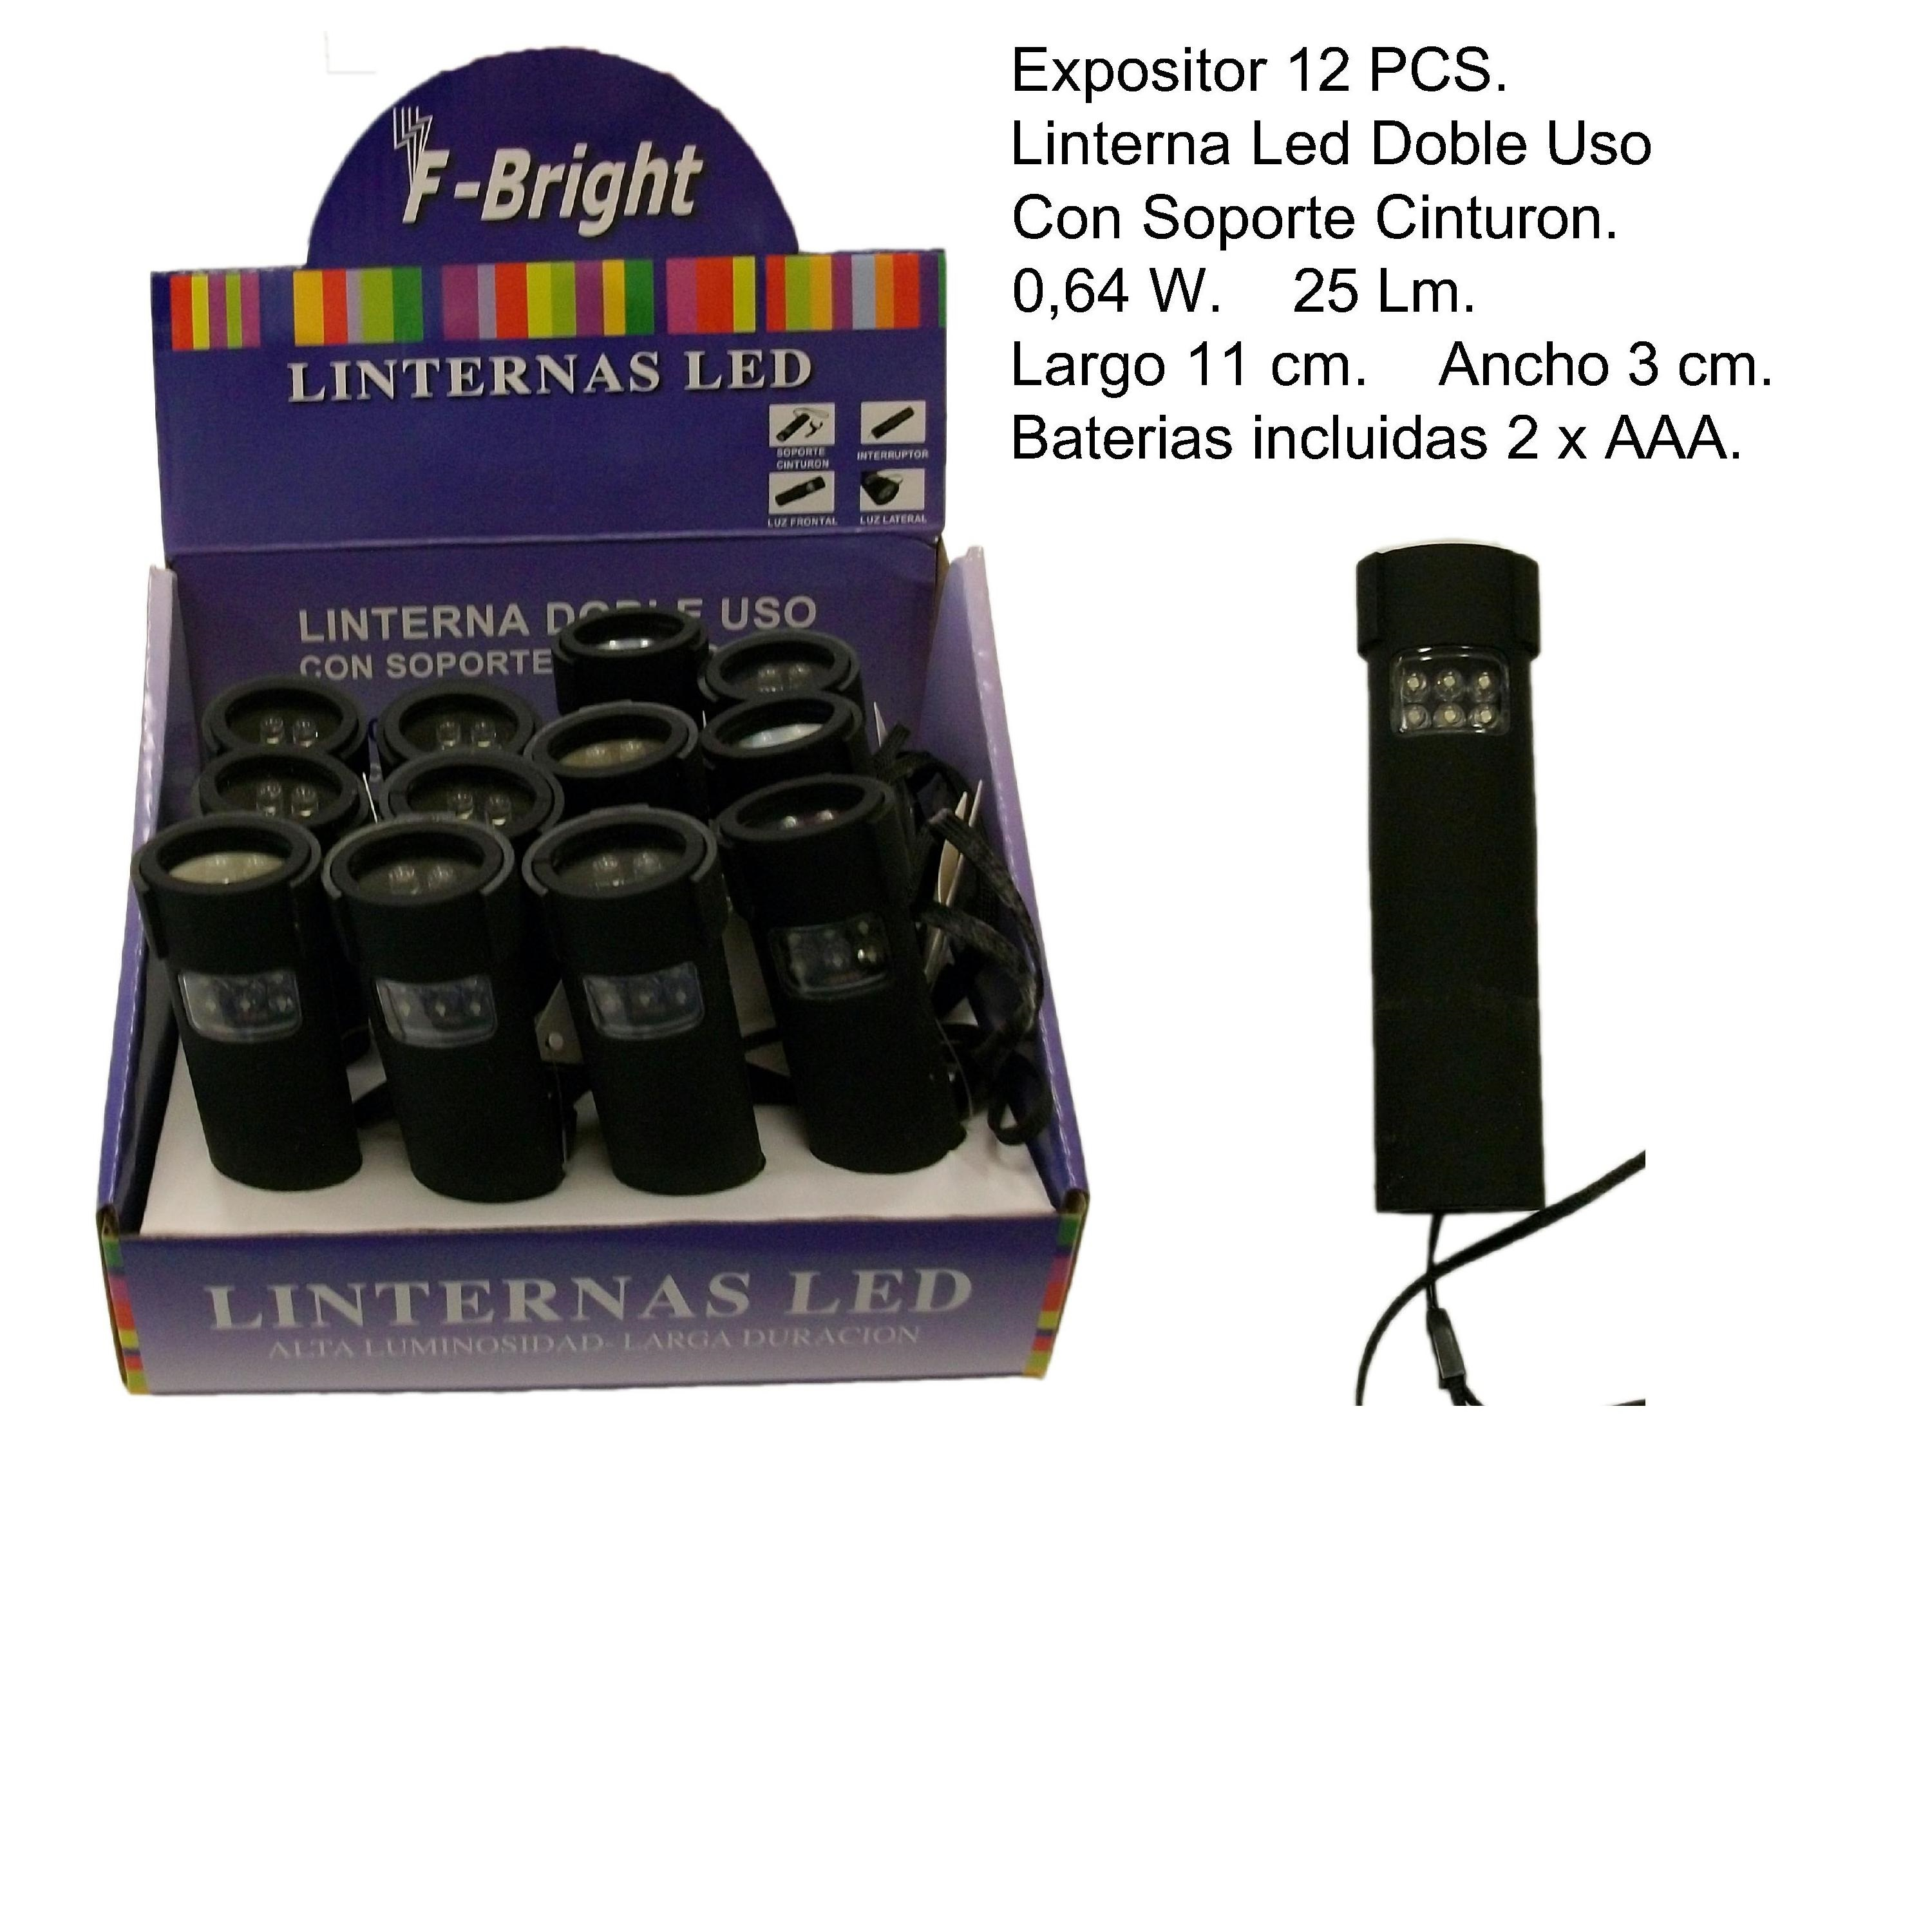 EXP.12 LINTERNAS LED LUZ FRONTAL+LATERAL